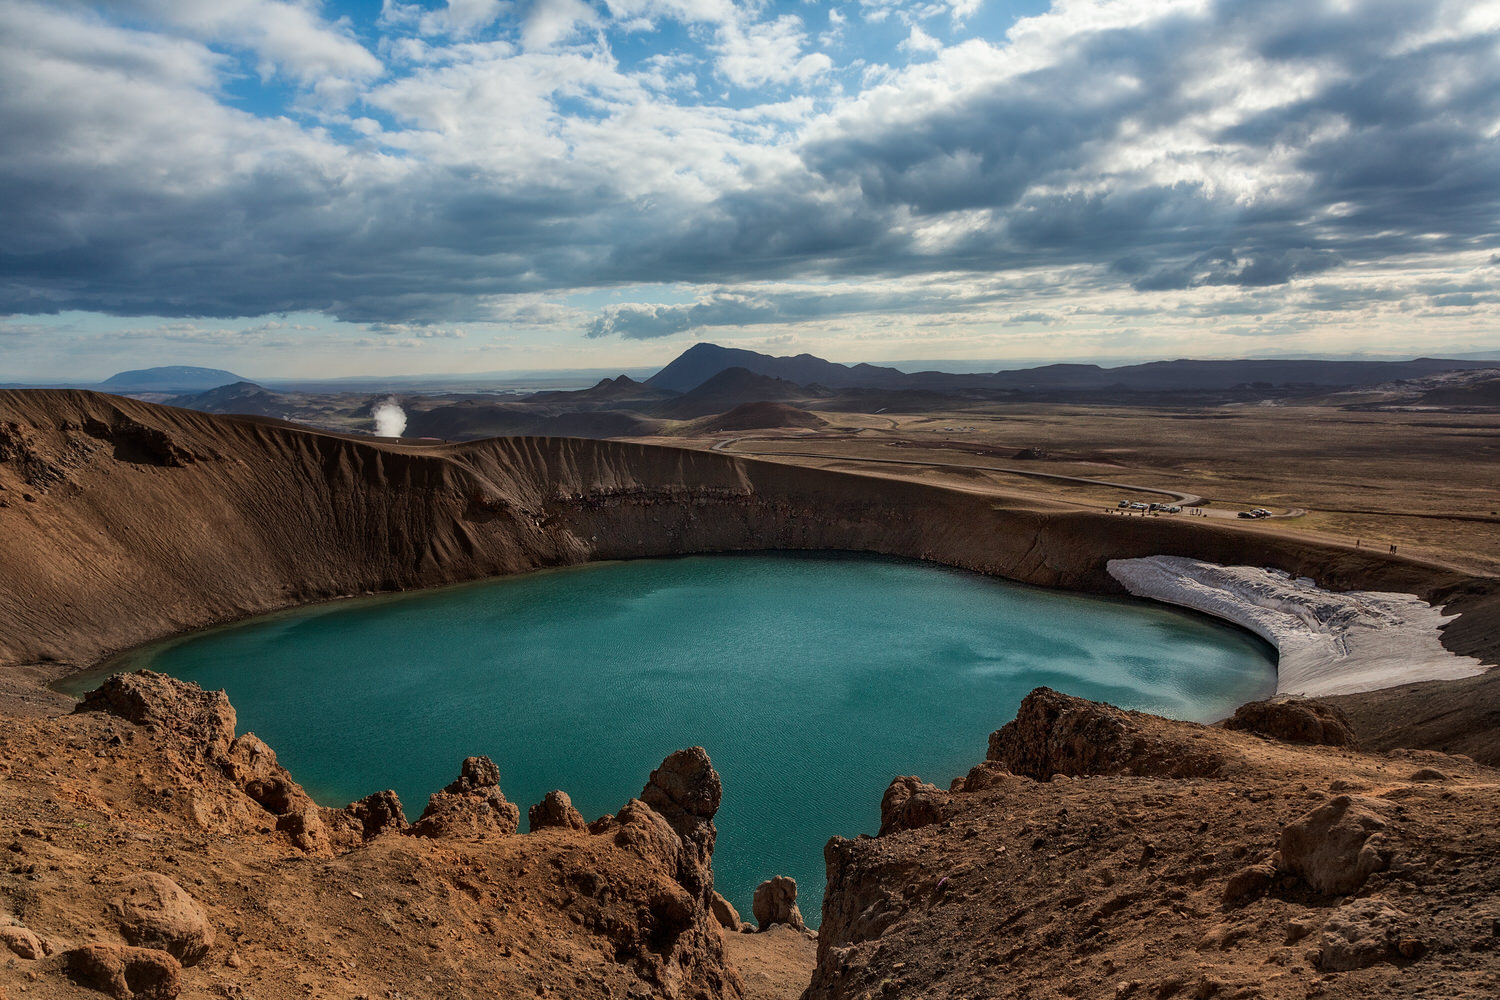 Overview of the  Stora-Viti crater  near the town of  Myvatn  in Iceland.